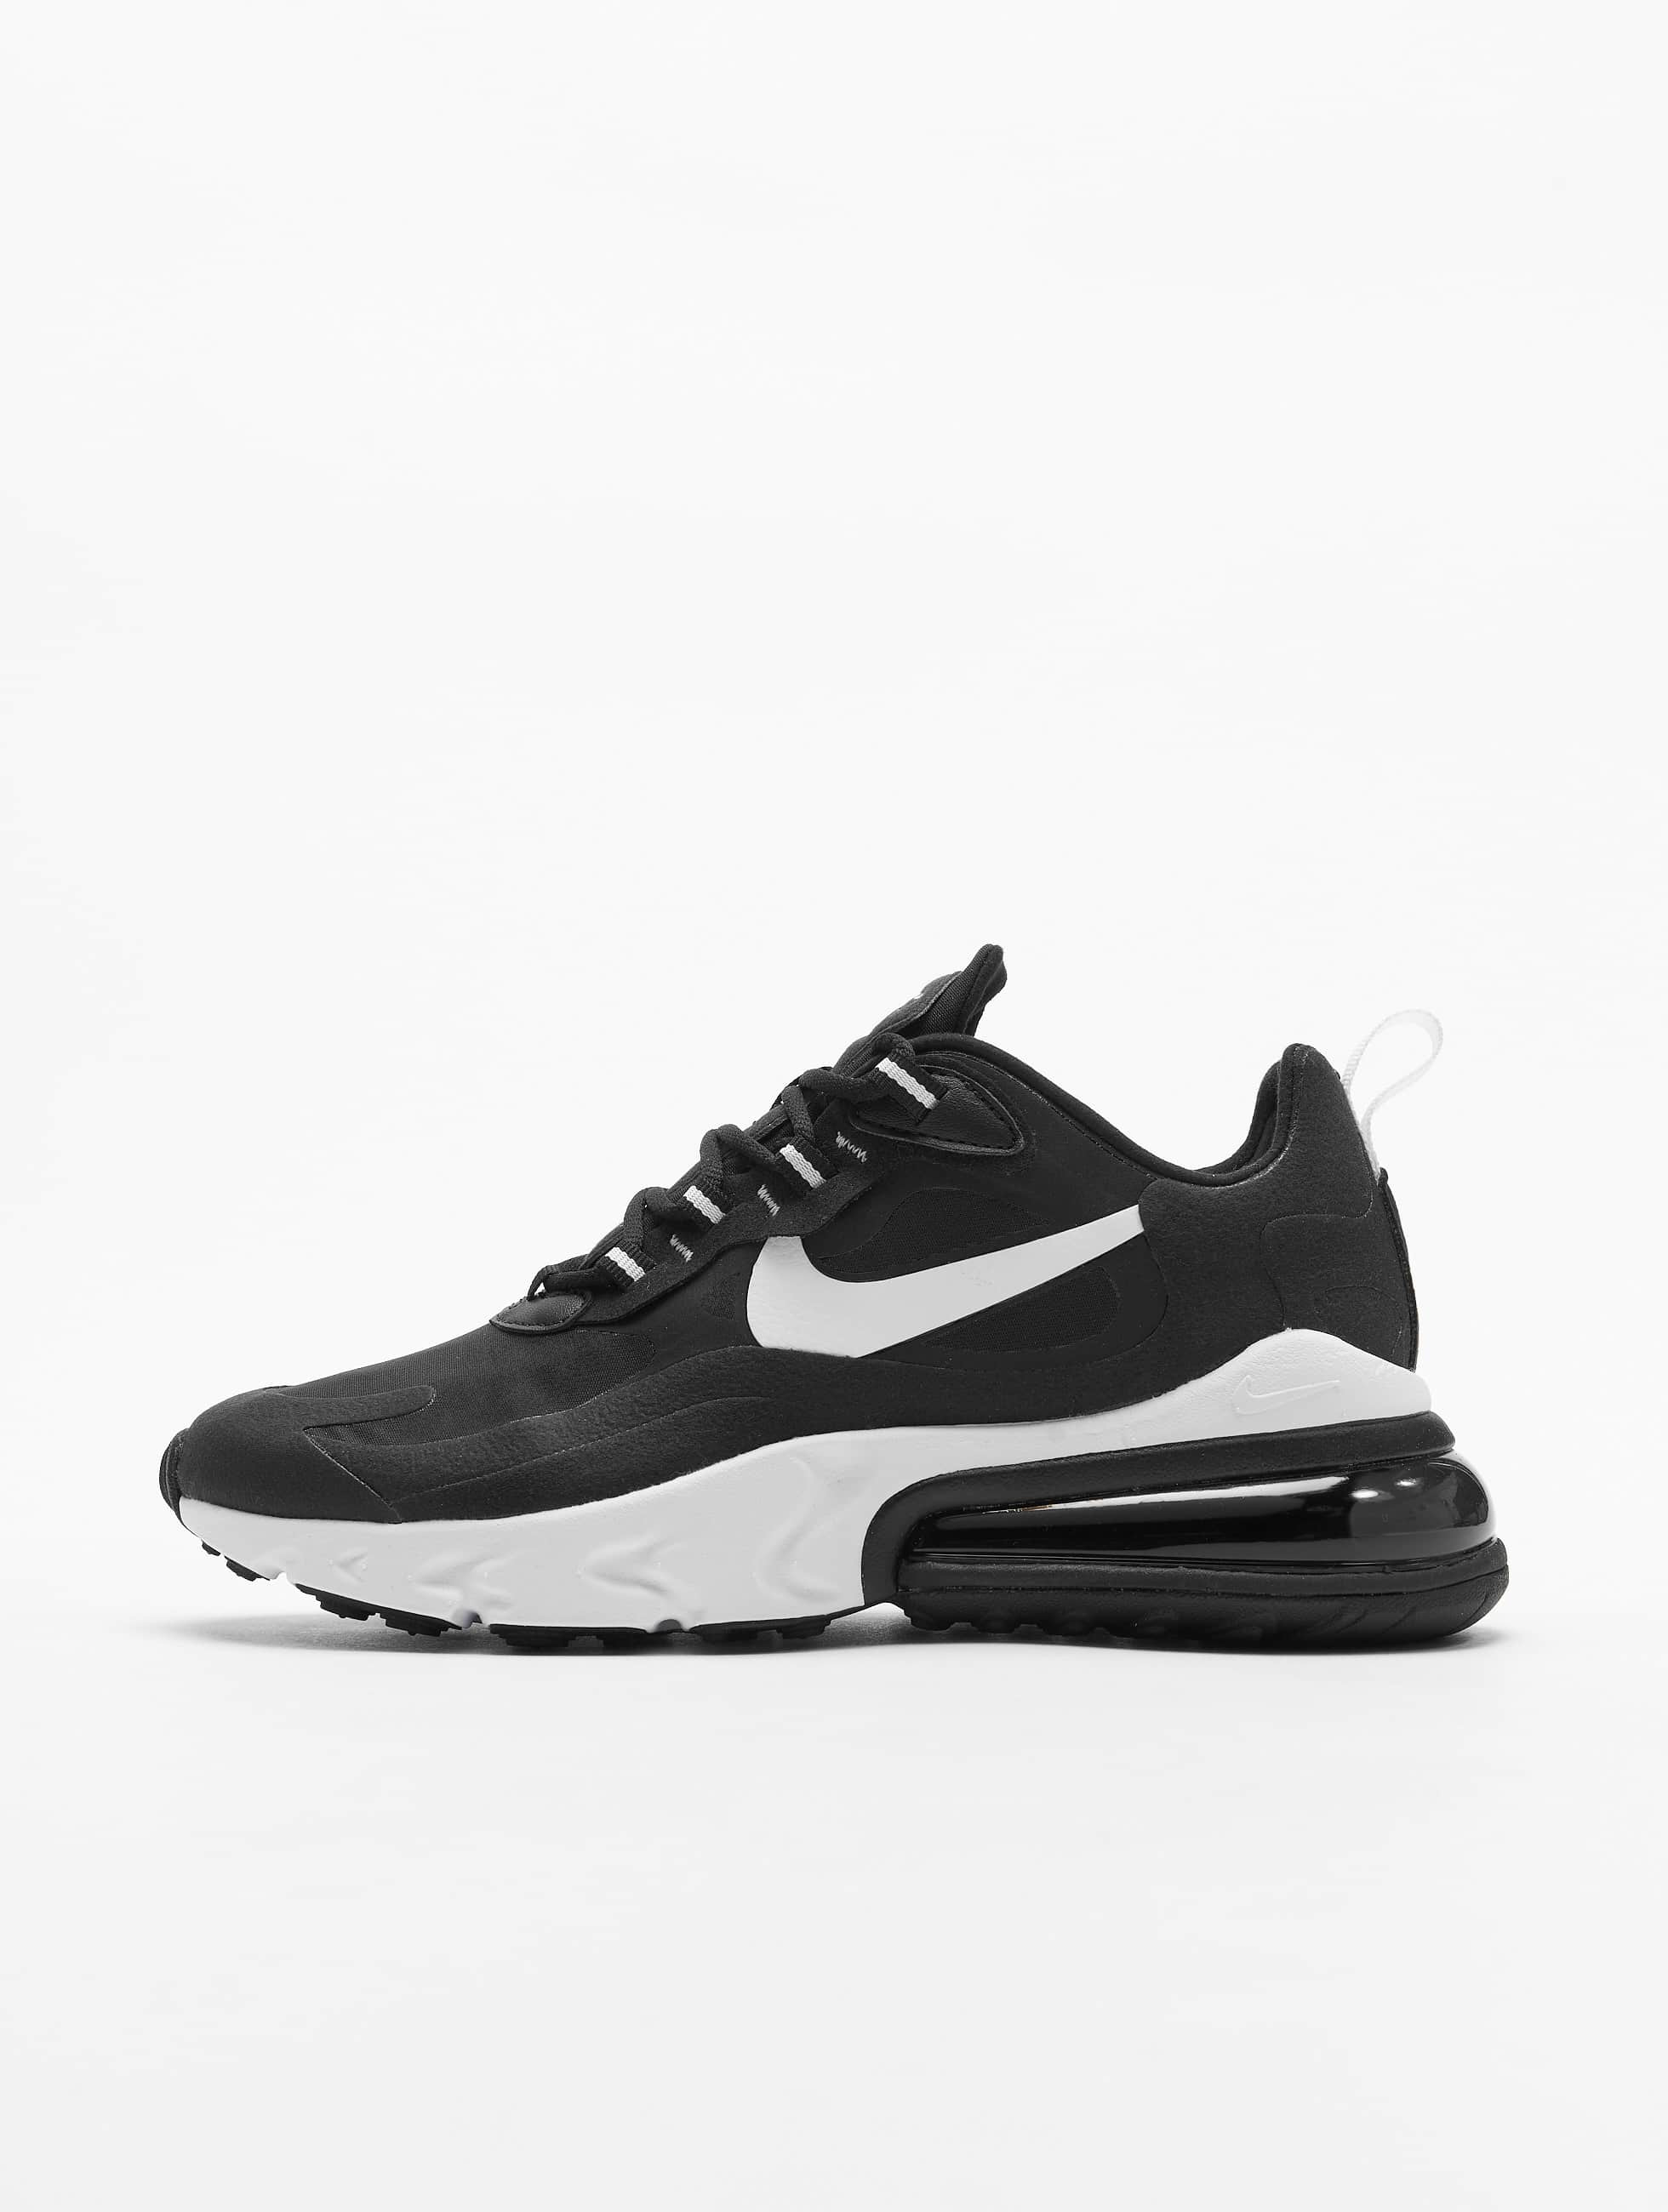 Nike Air Max 270 React Sneakers Black/White/Black